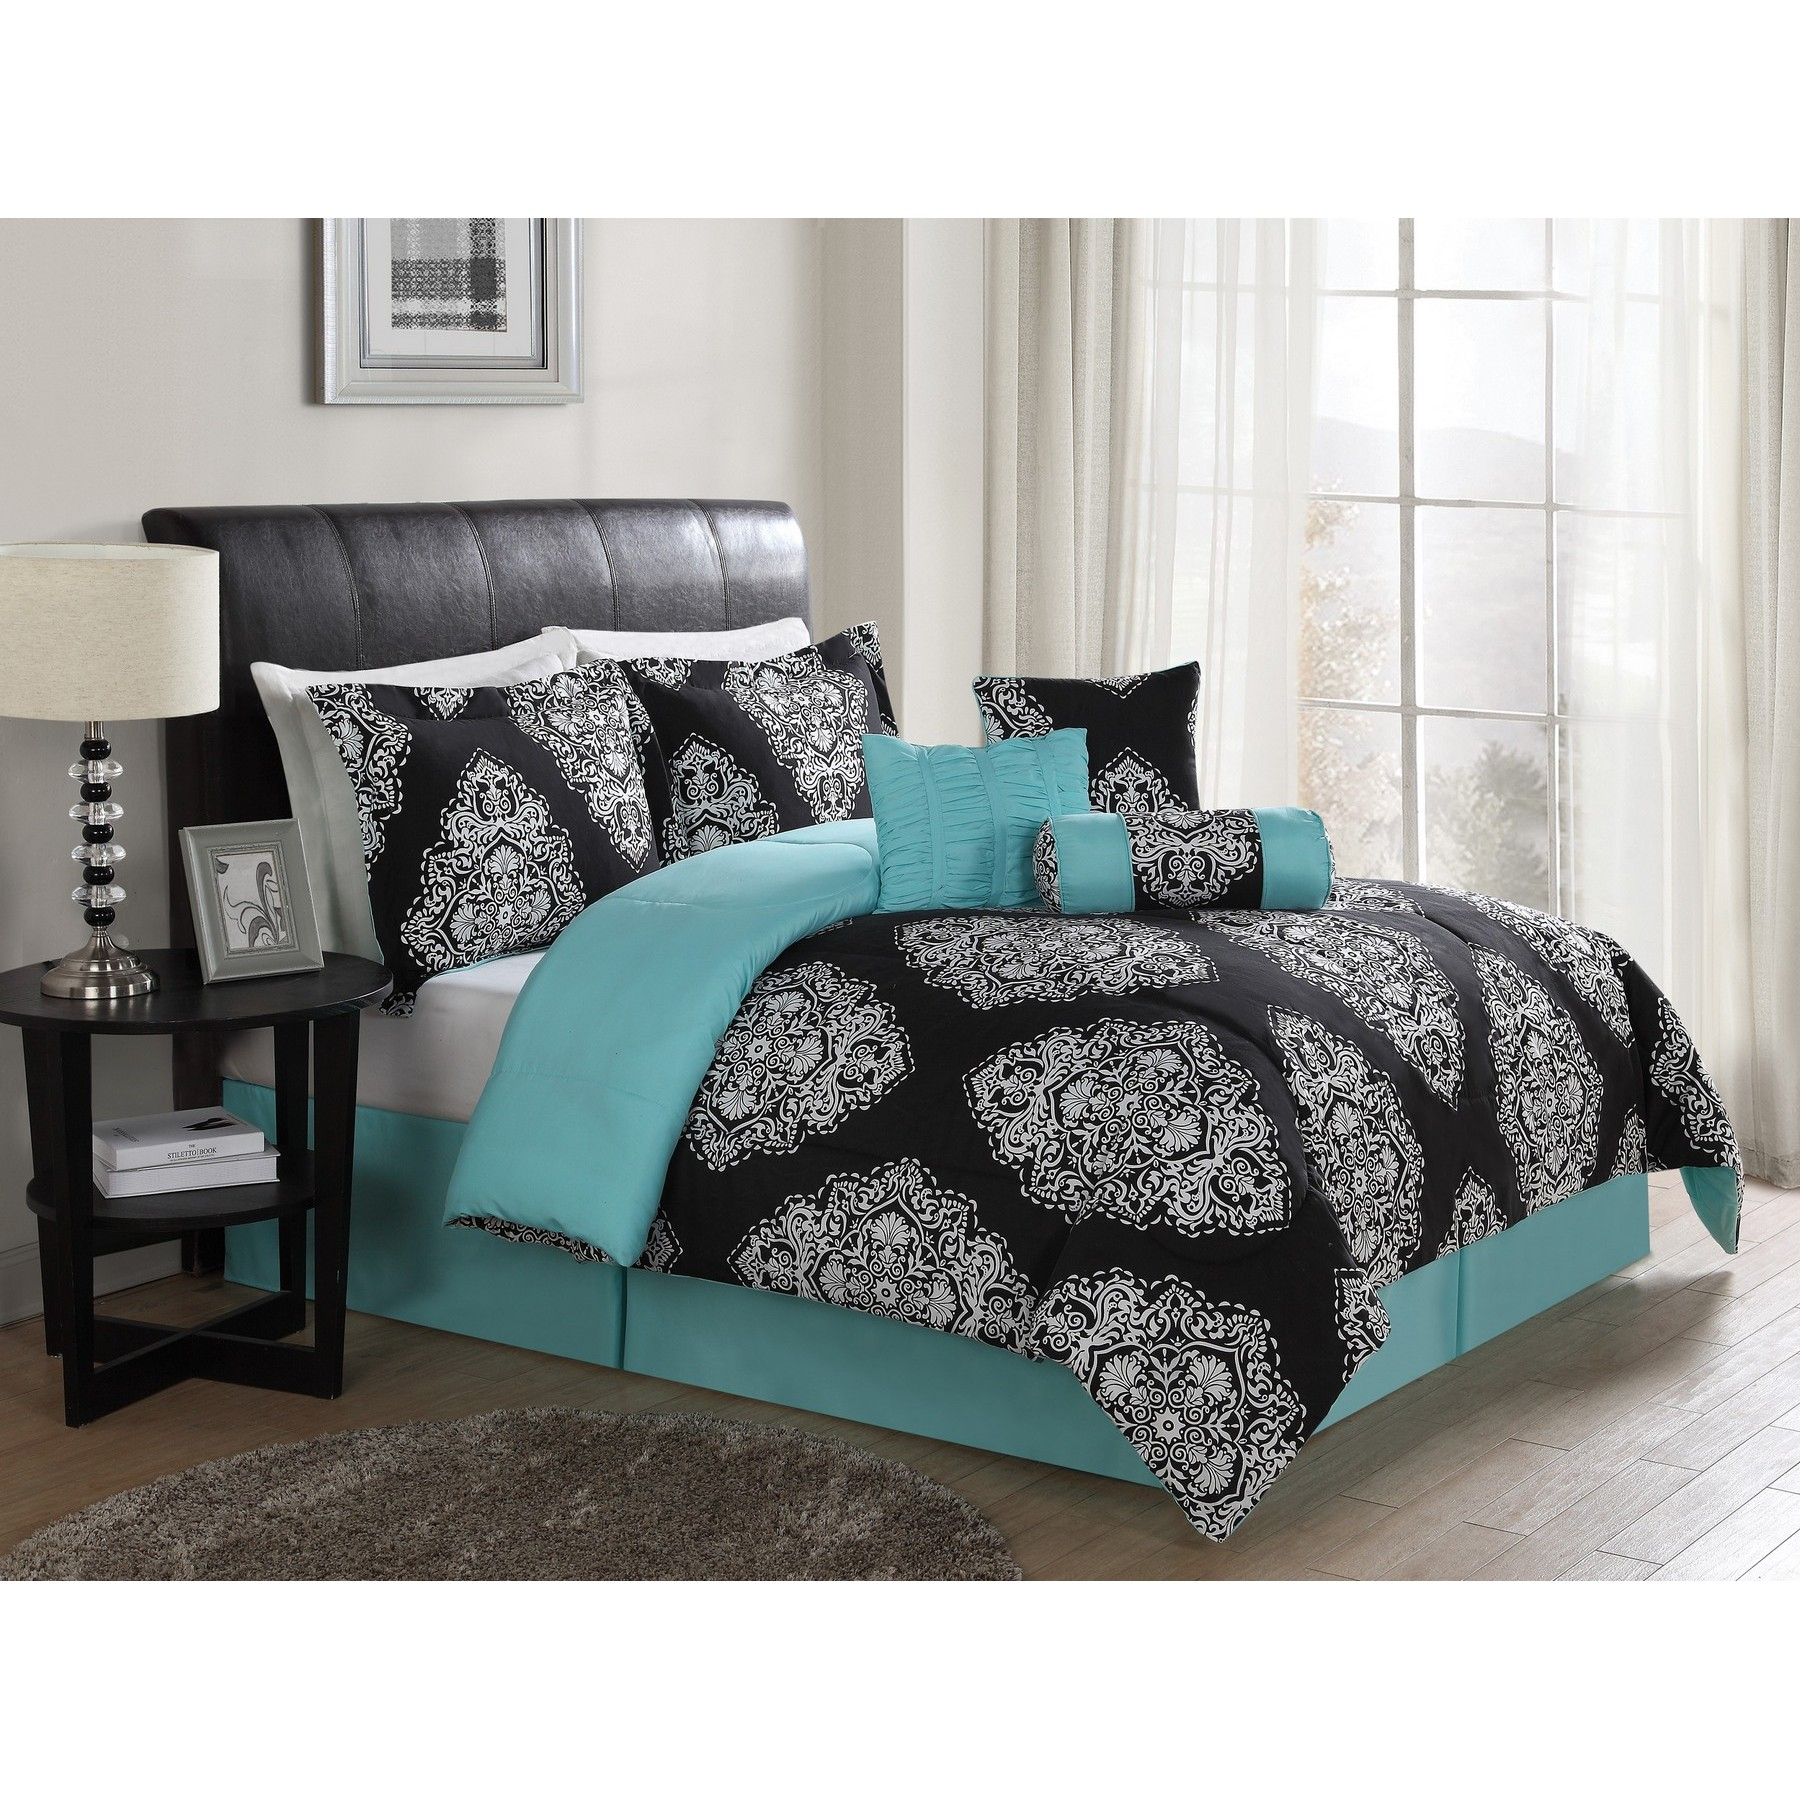 kids comforters bedding sets boys purple bedroom twin teal comely set cotton comforter bed